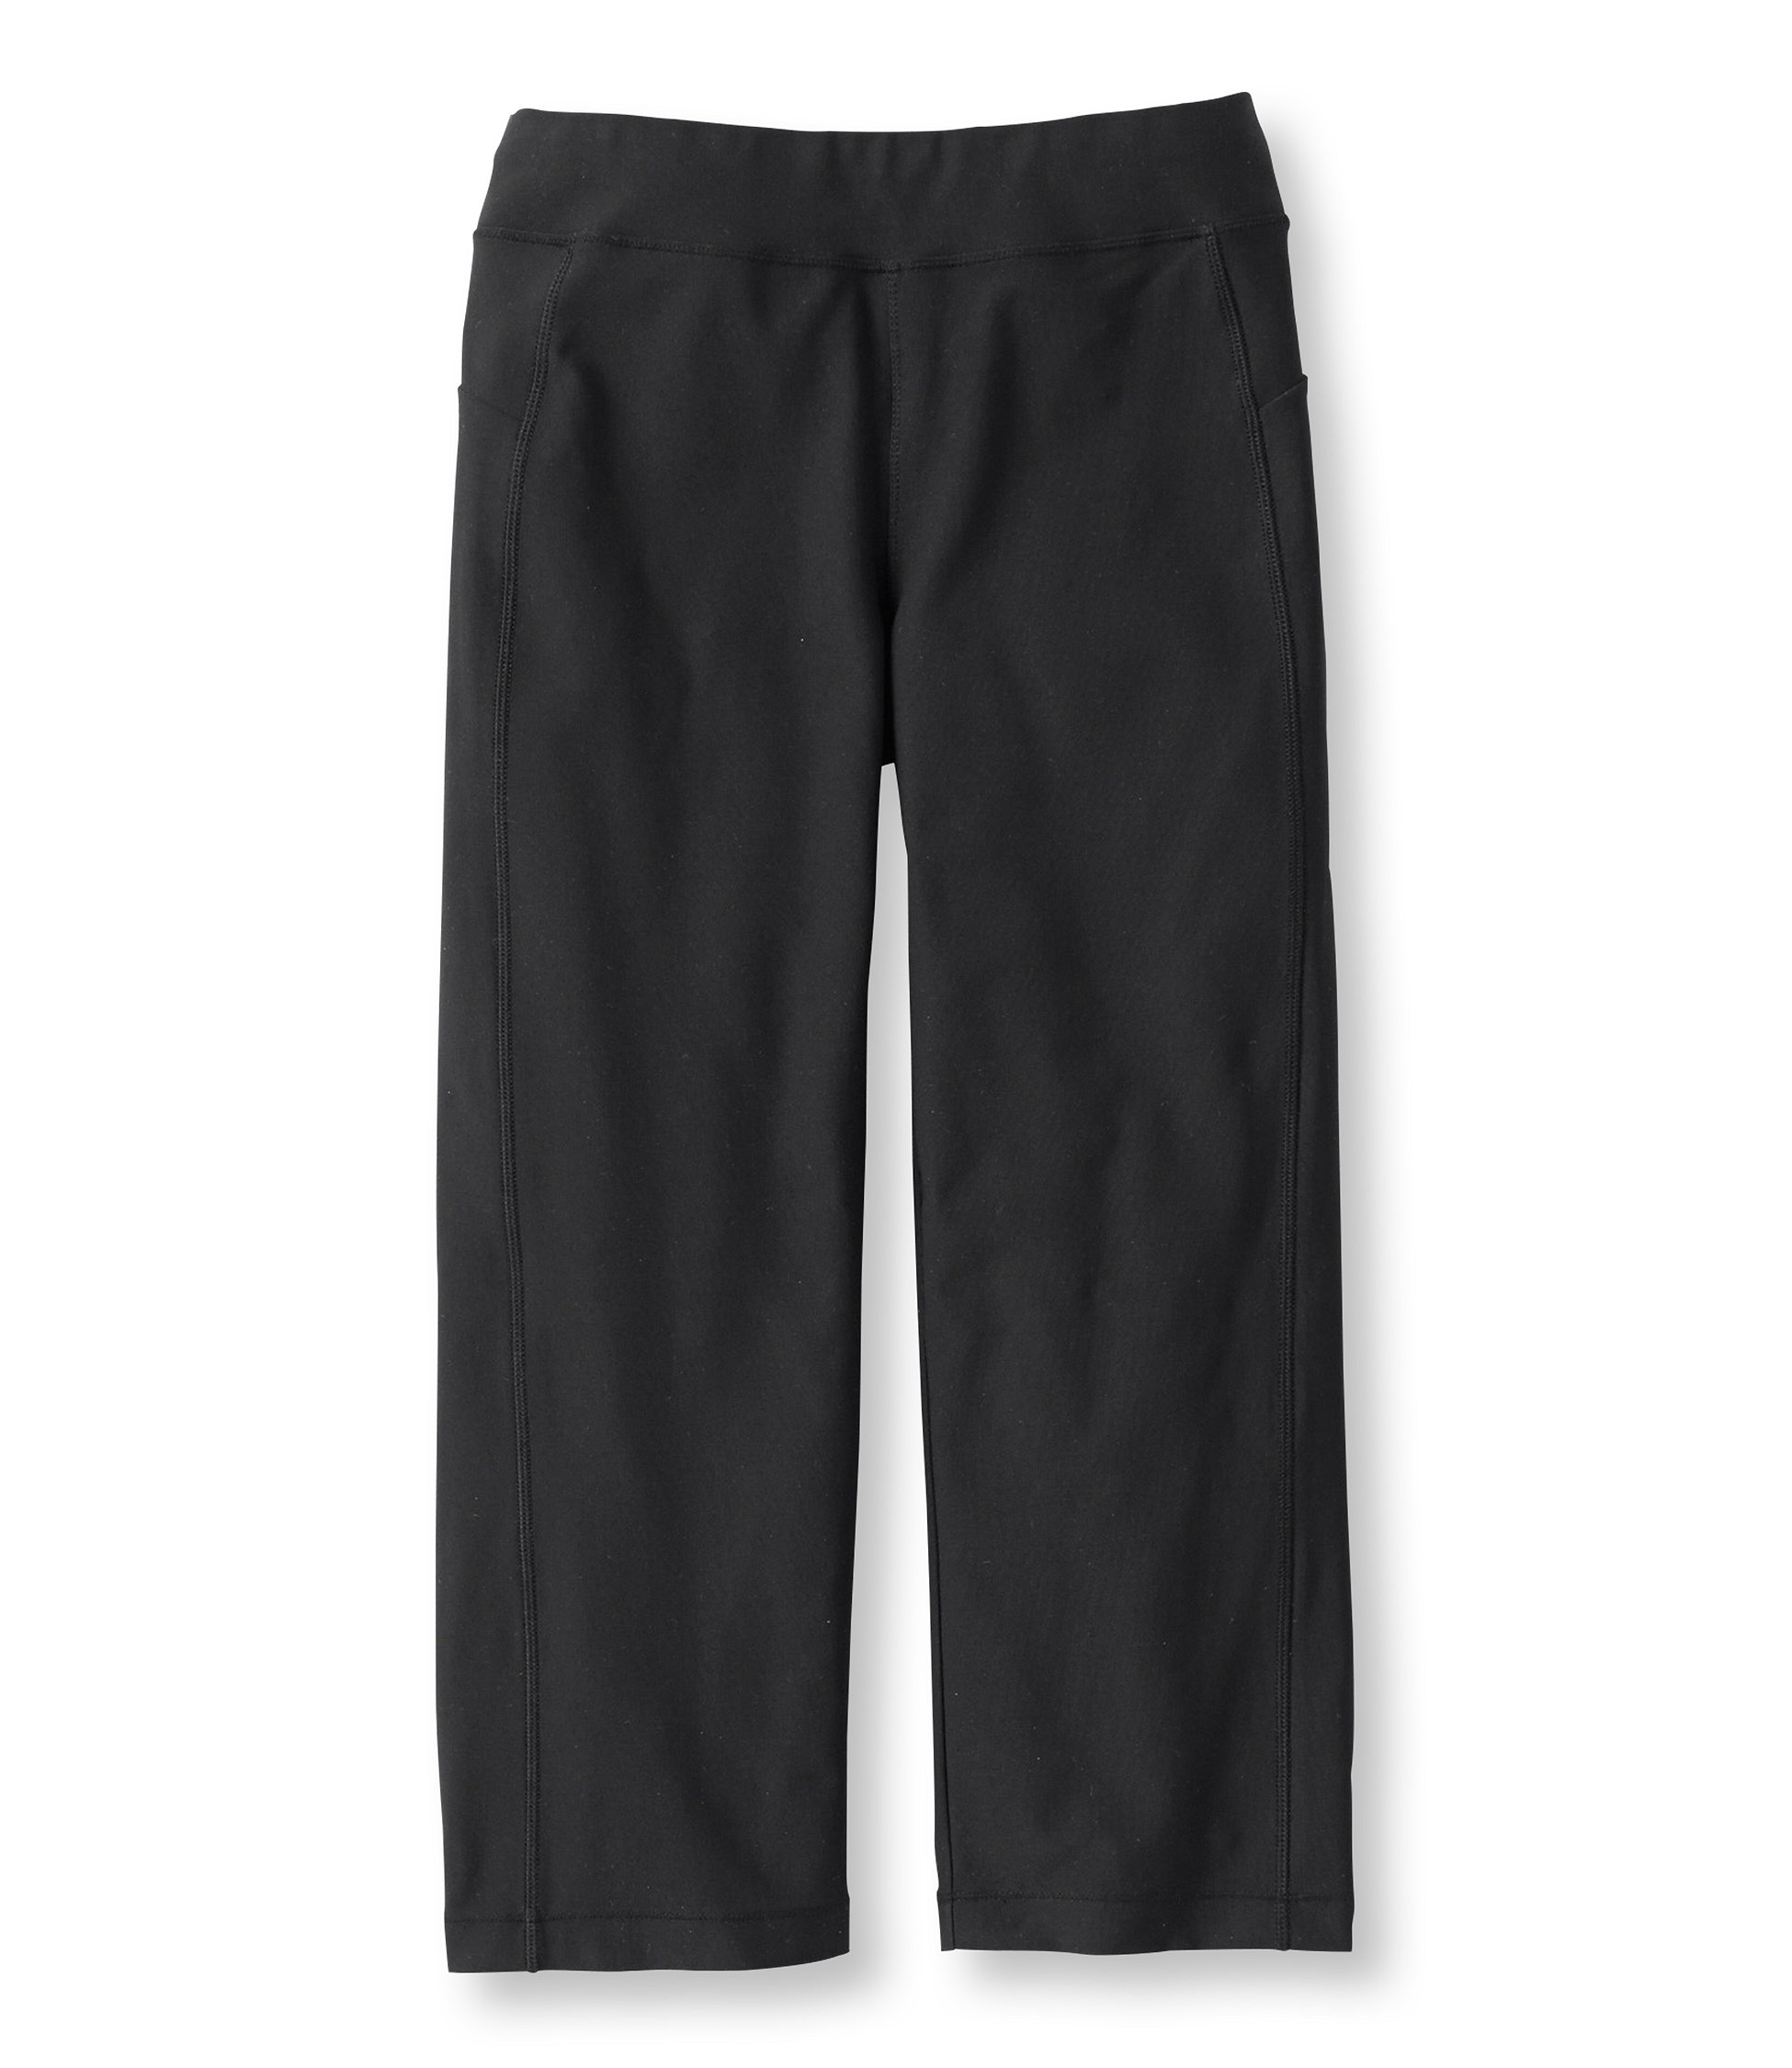 L.L.Bean Fitness Pants, Cropped